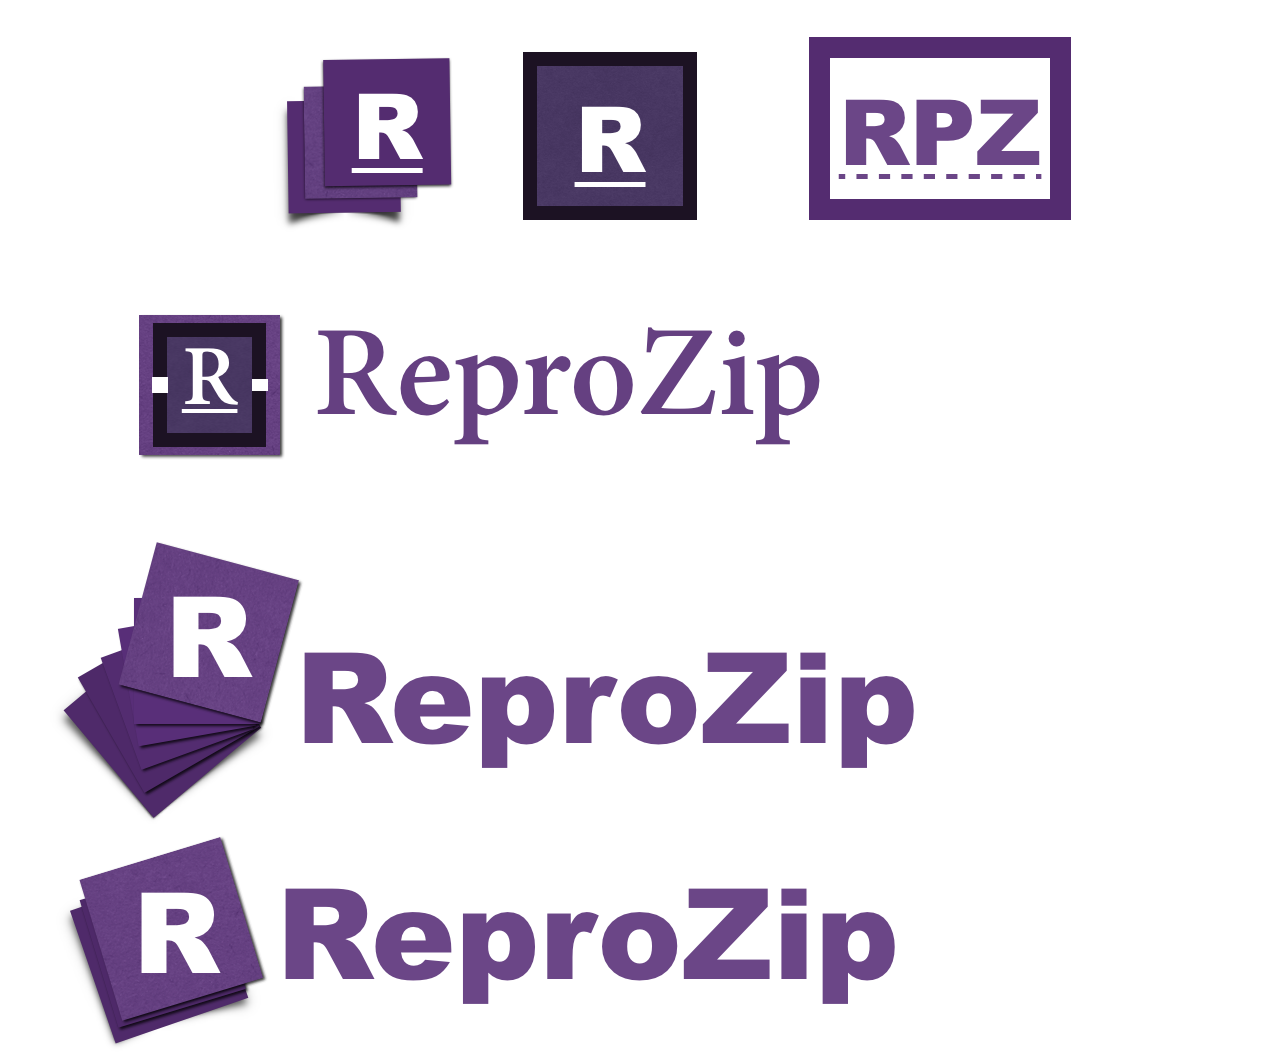 Here are the few logos markups I designed